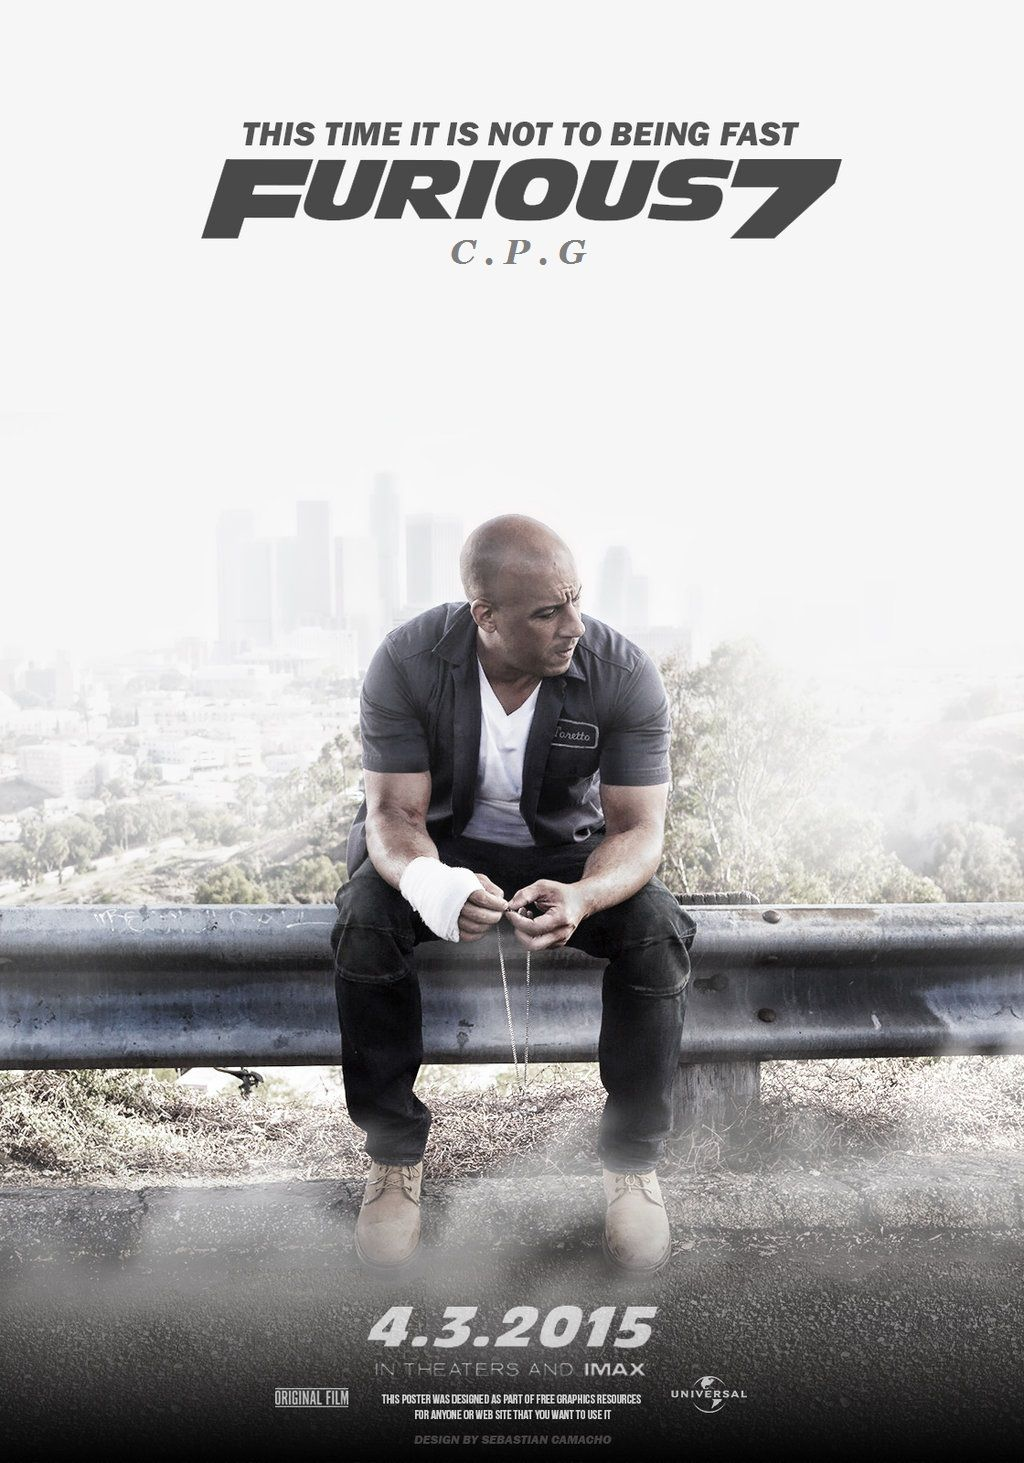 fast and furious 7 full movie in hindi free download hd 720p